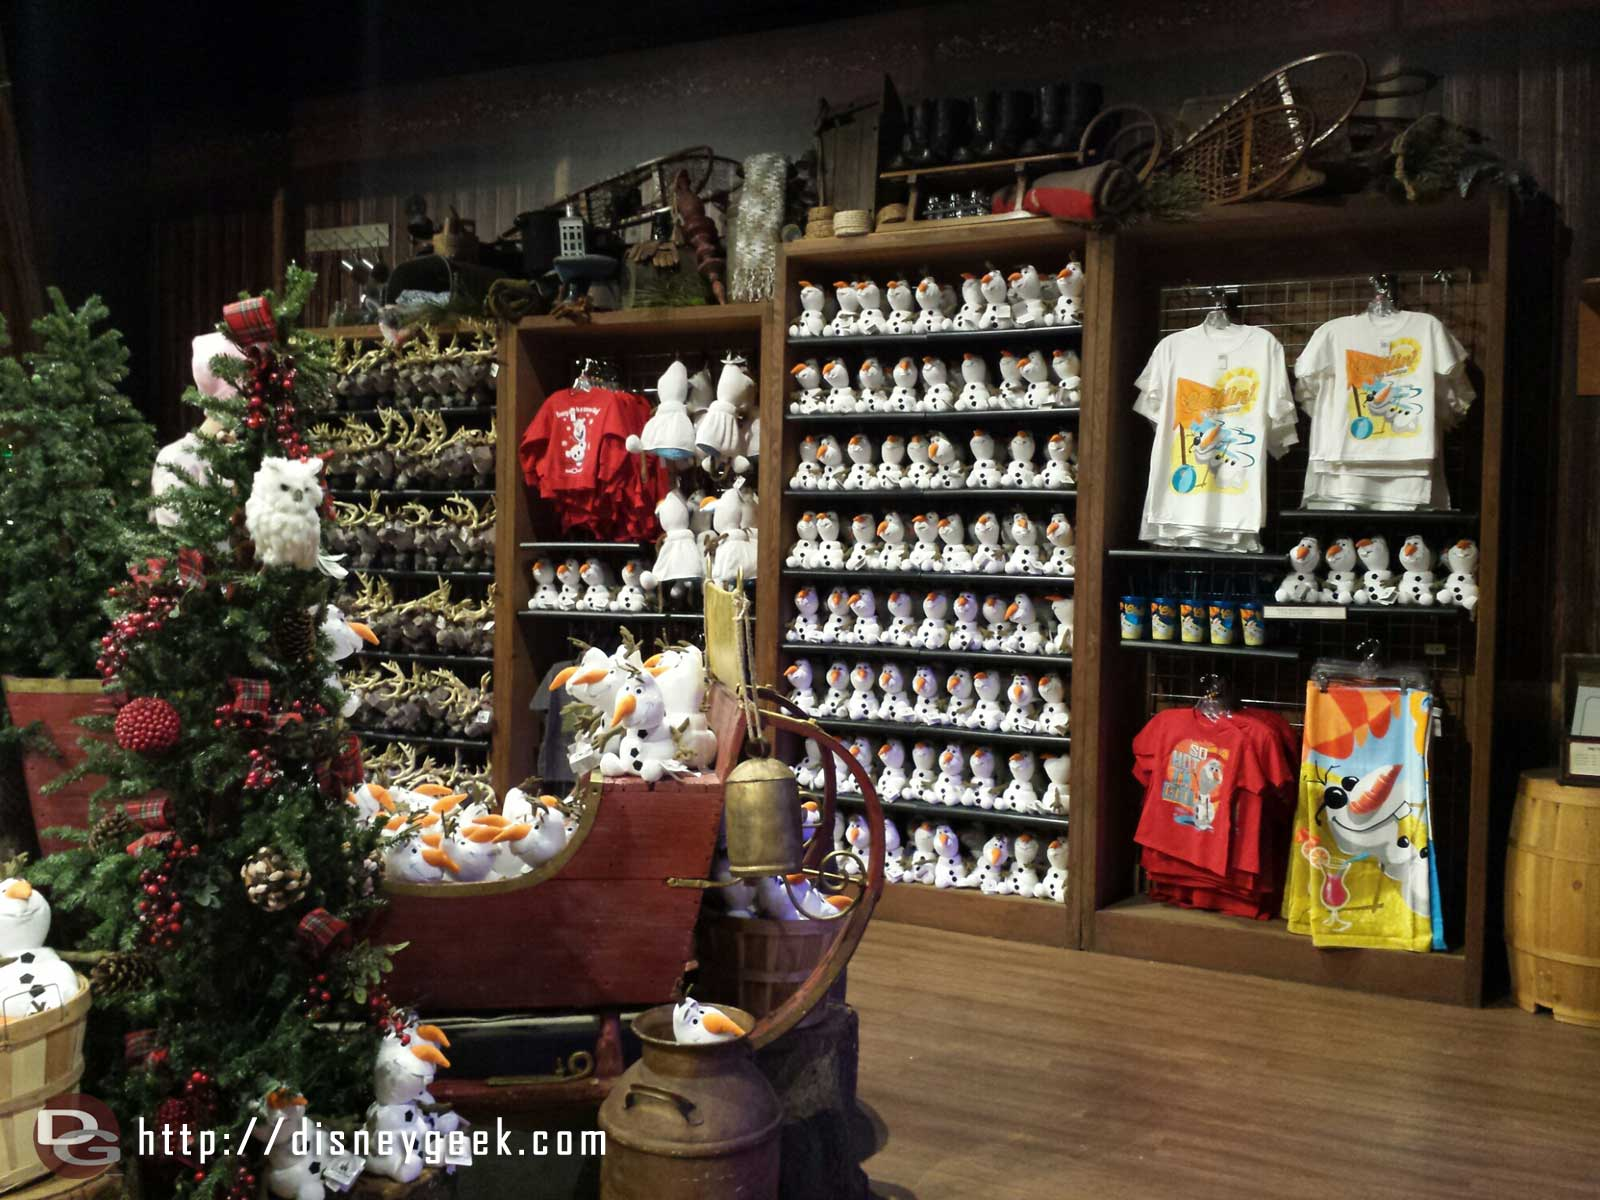 #Frozen merchandise at the Wandering Oaken